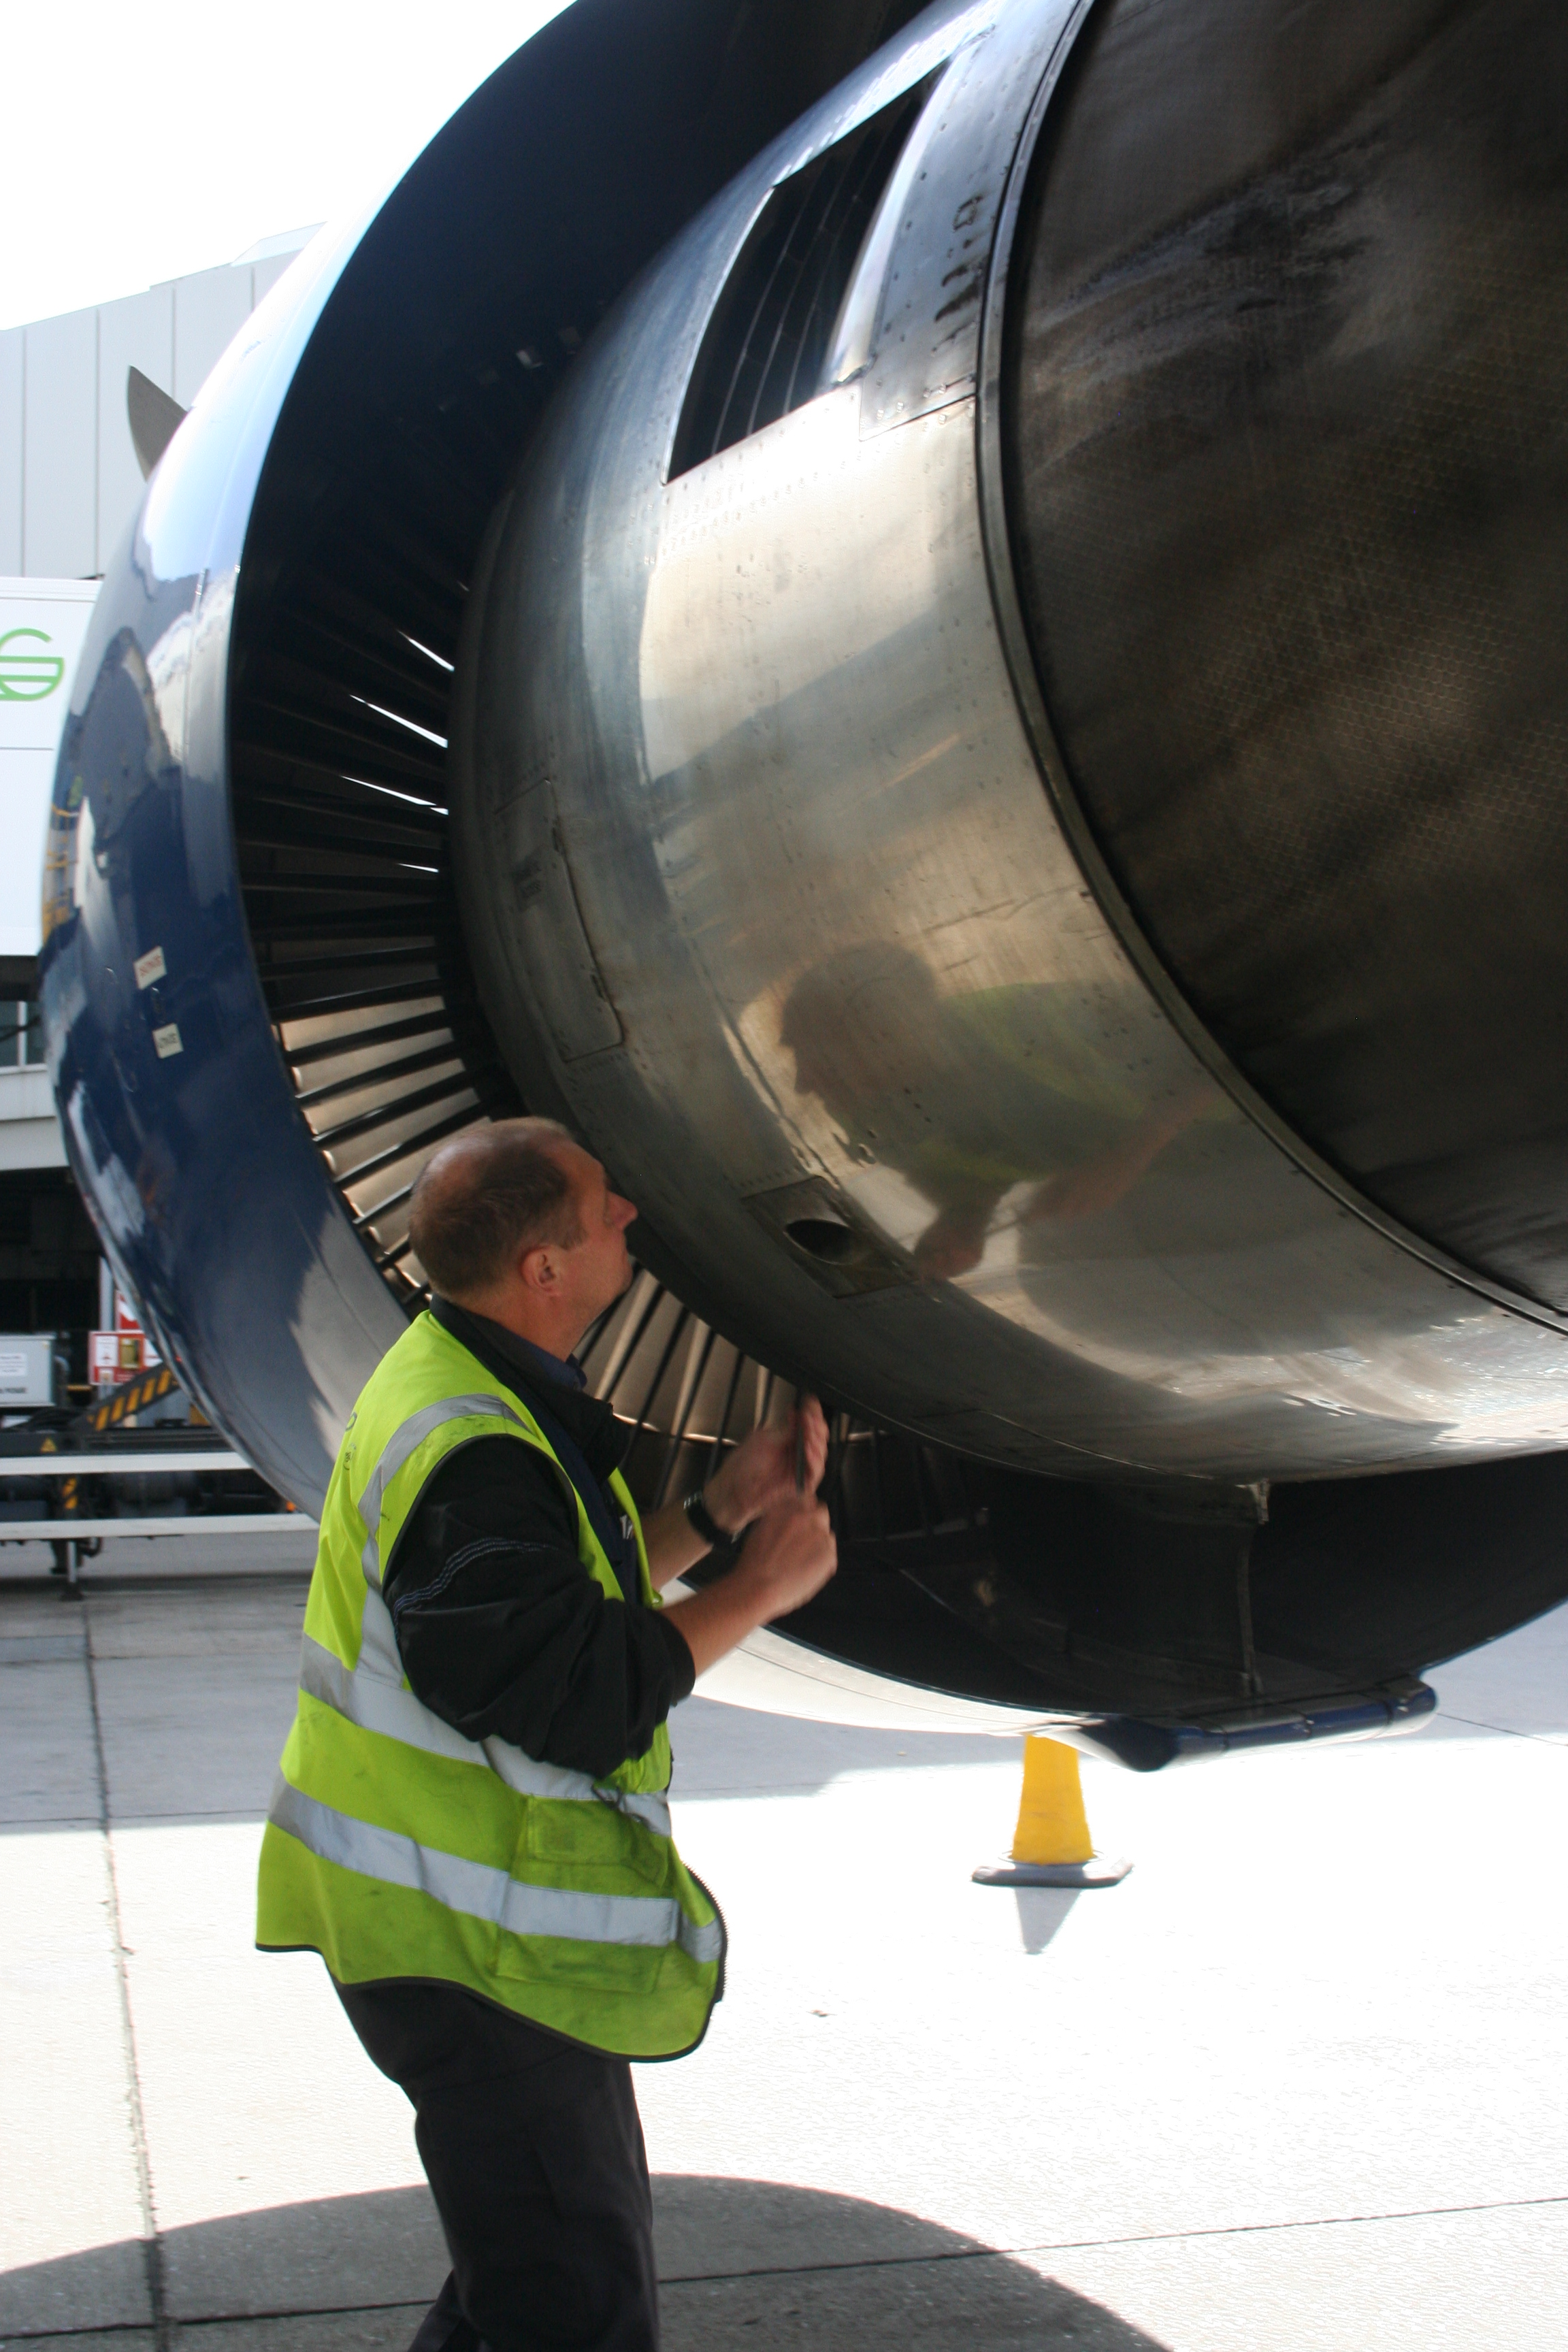 TechOps working on an engine